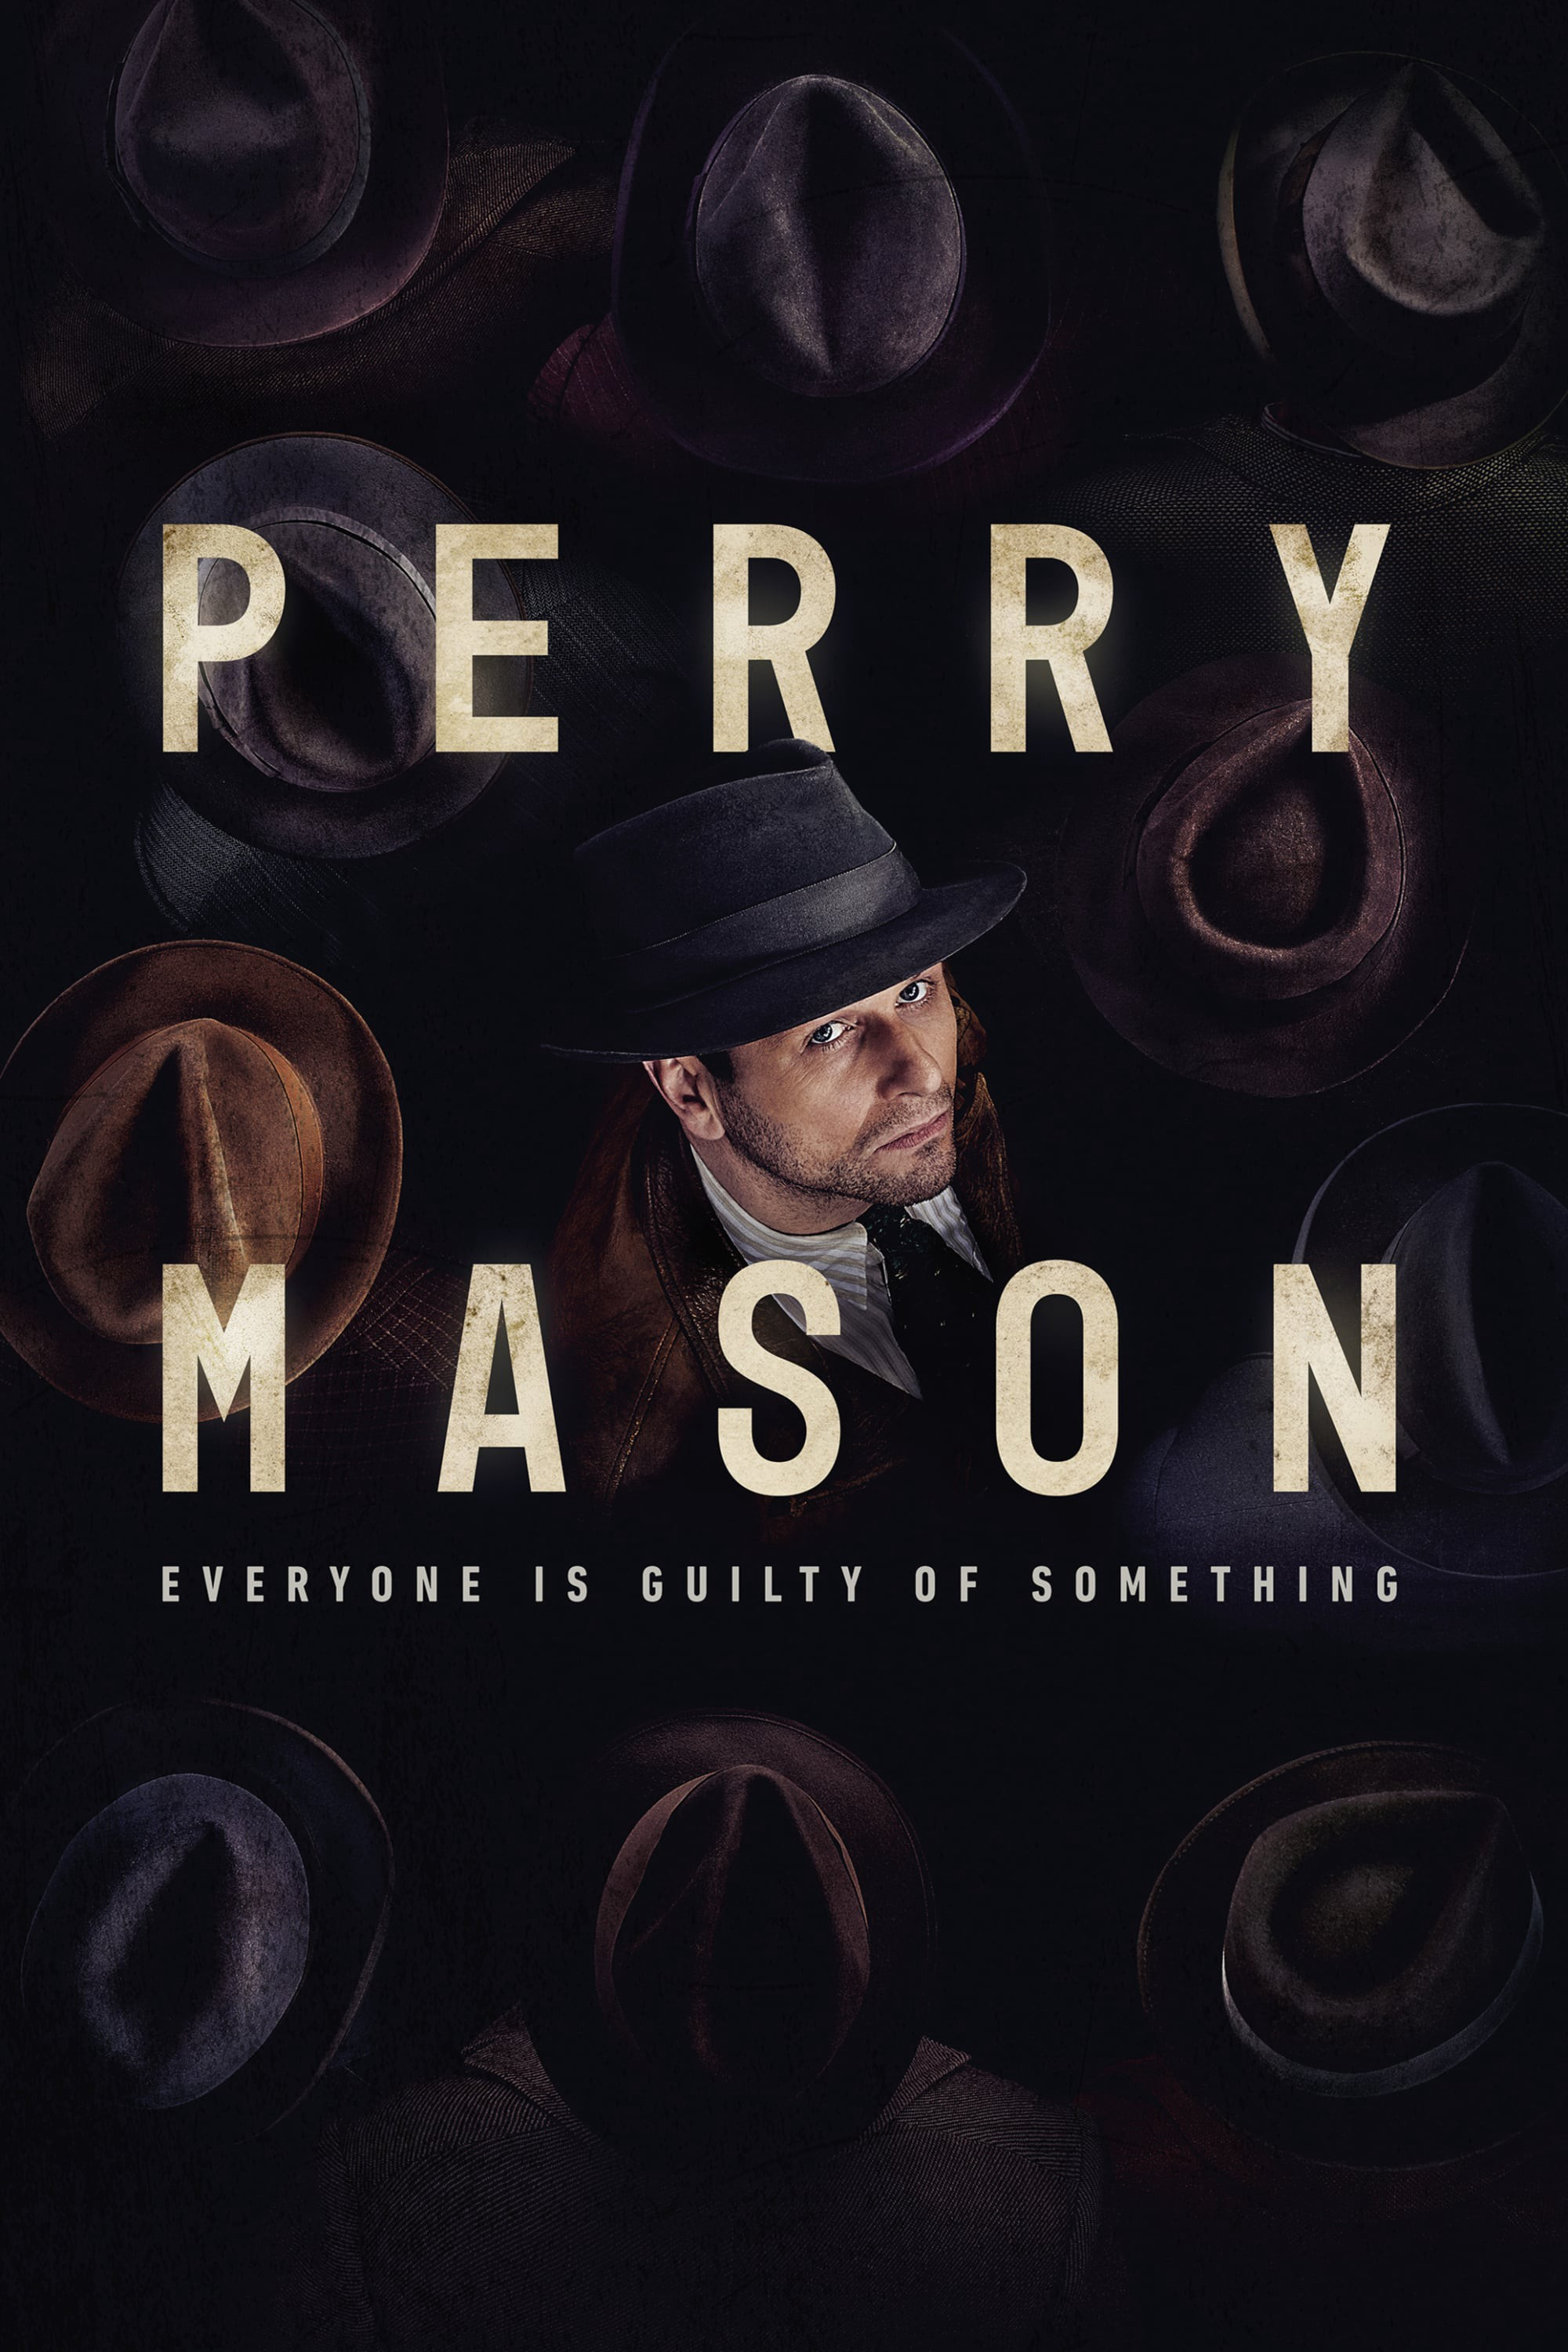 Perry Mason (2020) - Season 1 Episode 8 - Chapter Eight